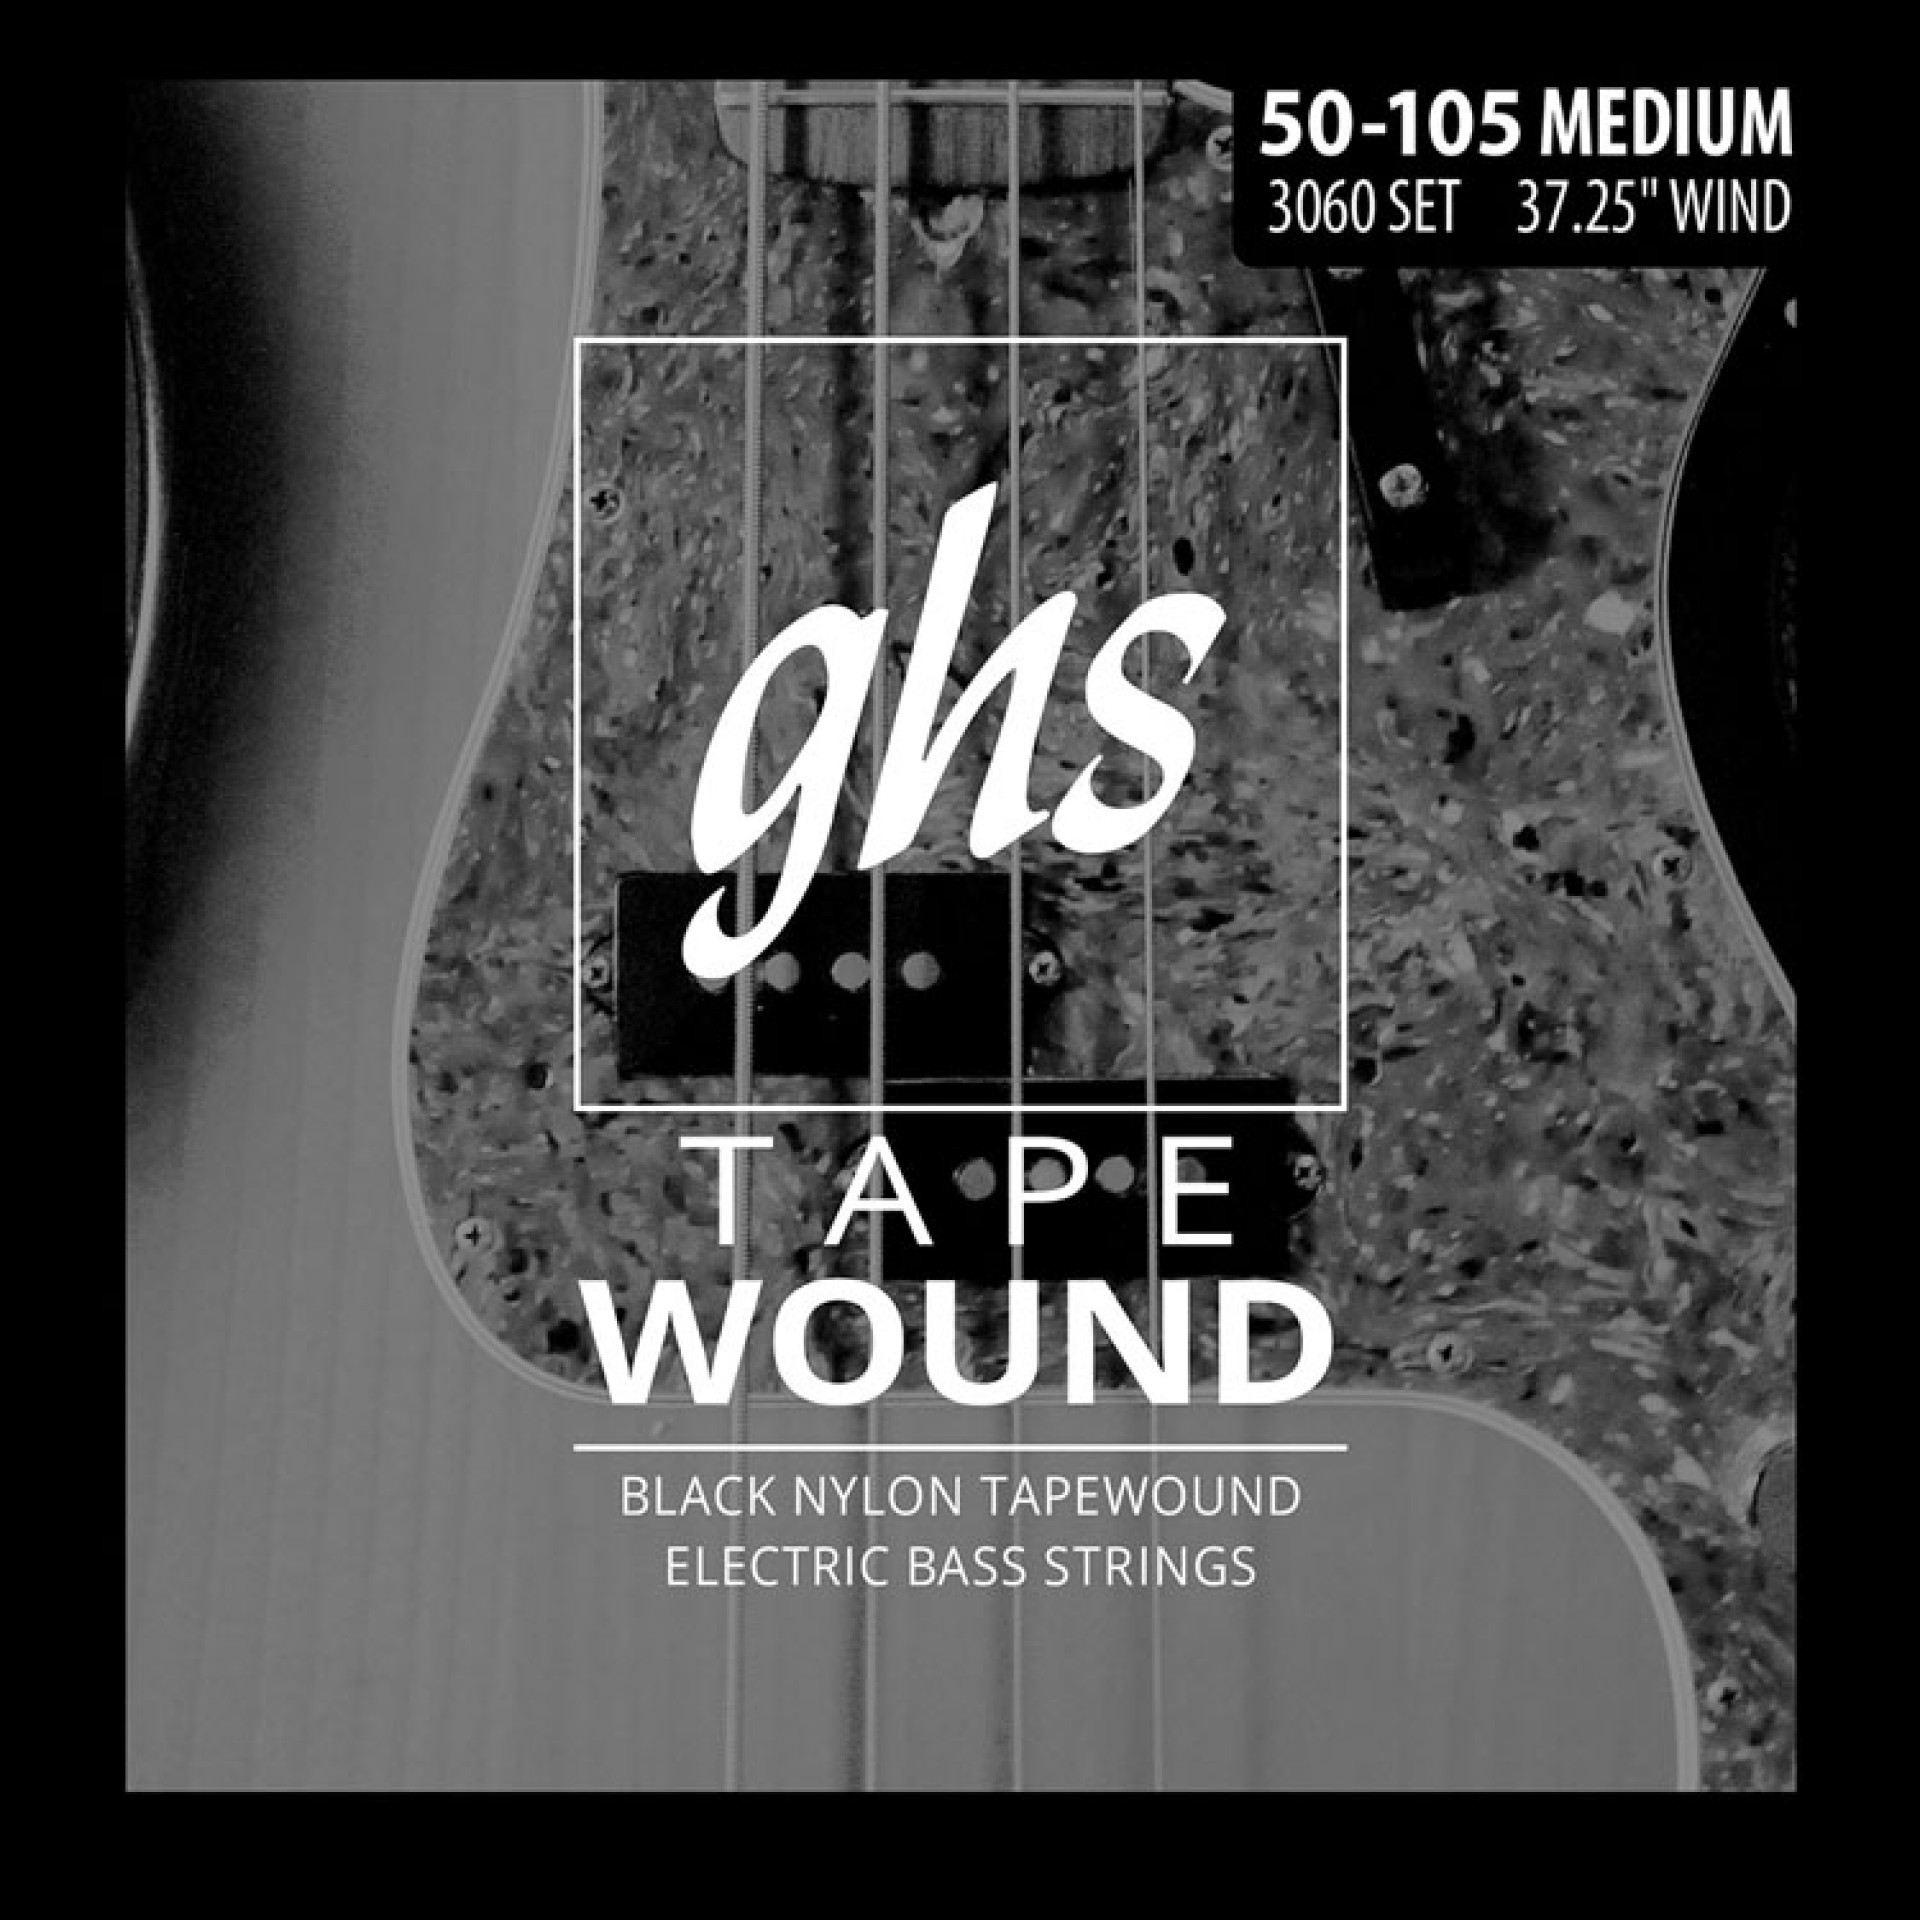 GHS 3060 Black Nylon Tapewound Bass Strings Long Scale - 4-String 50-105 Medium